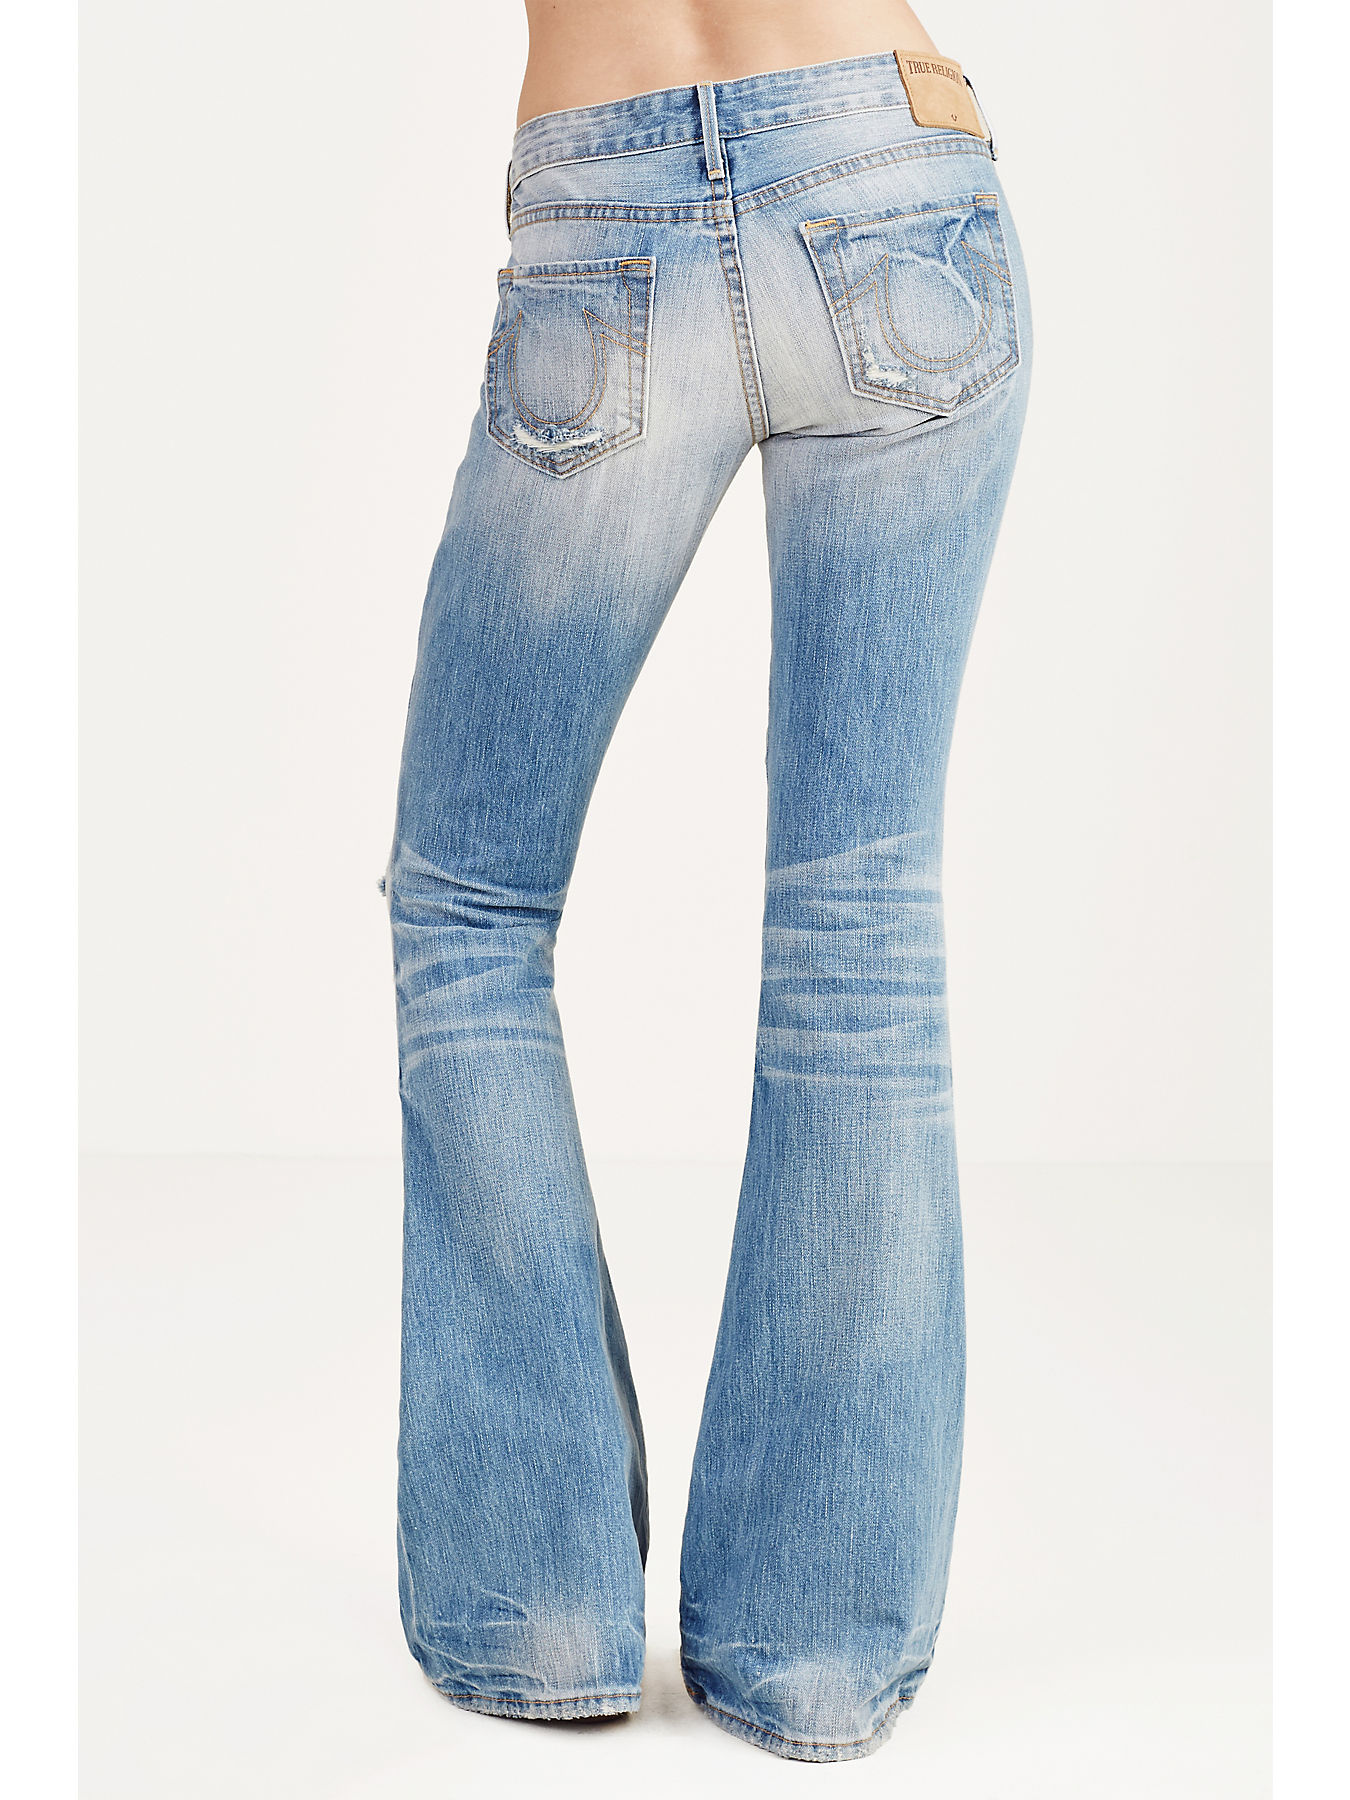 size 40 world-wide selection of browse latest collections KARLIE LOW RISE BELL BOTTOM WOMENS JEAN - True Religion